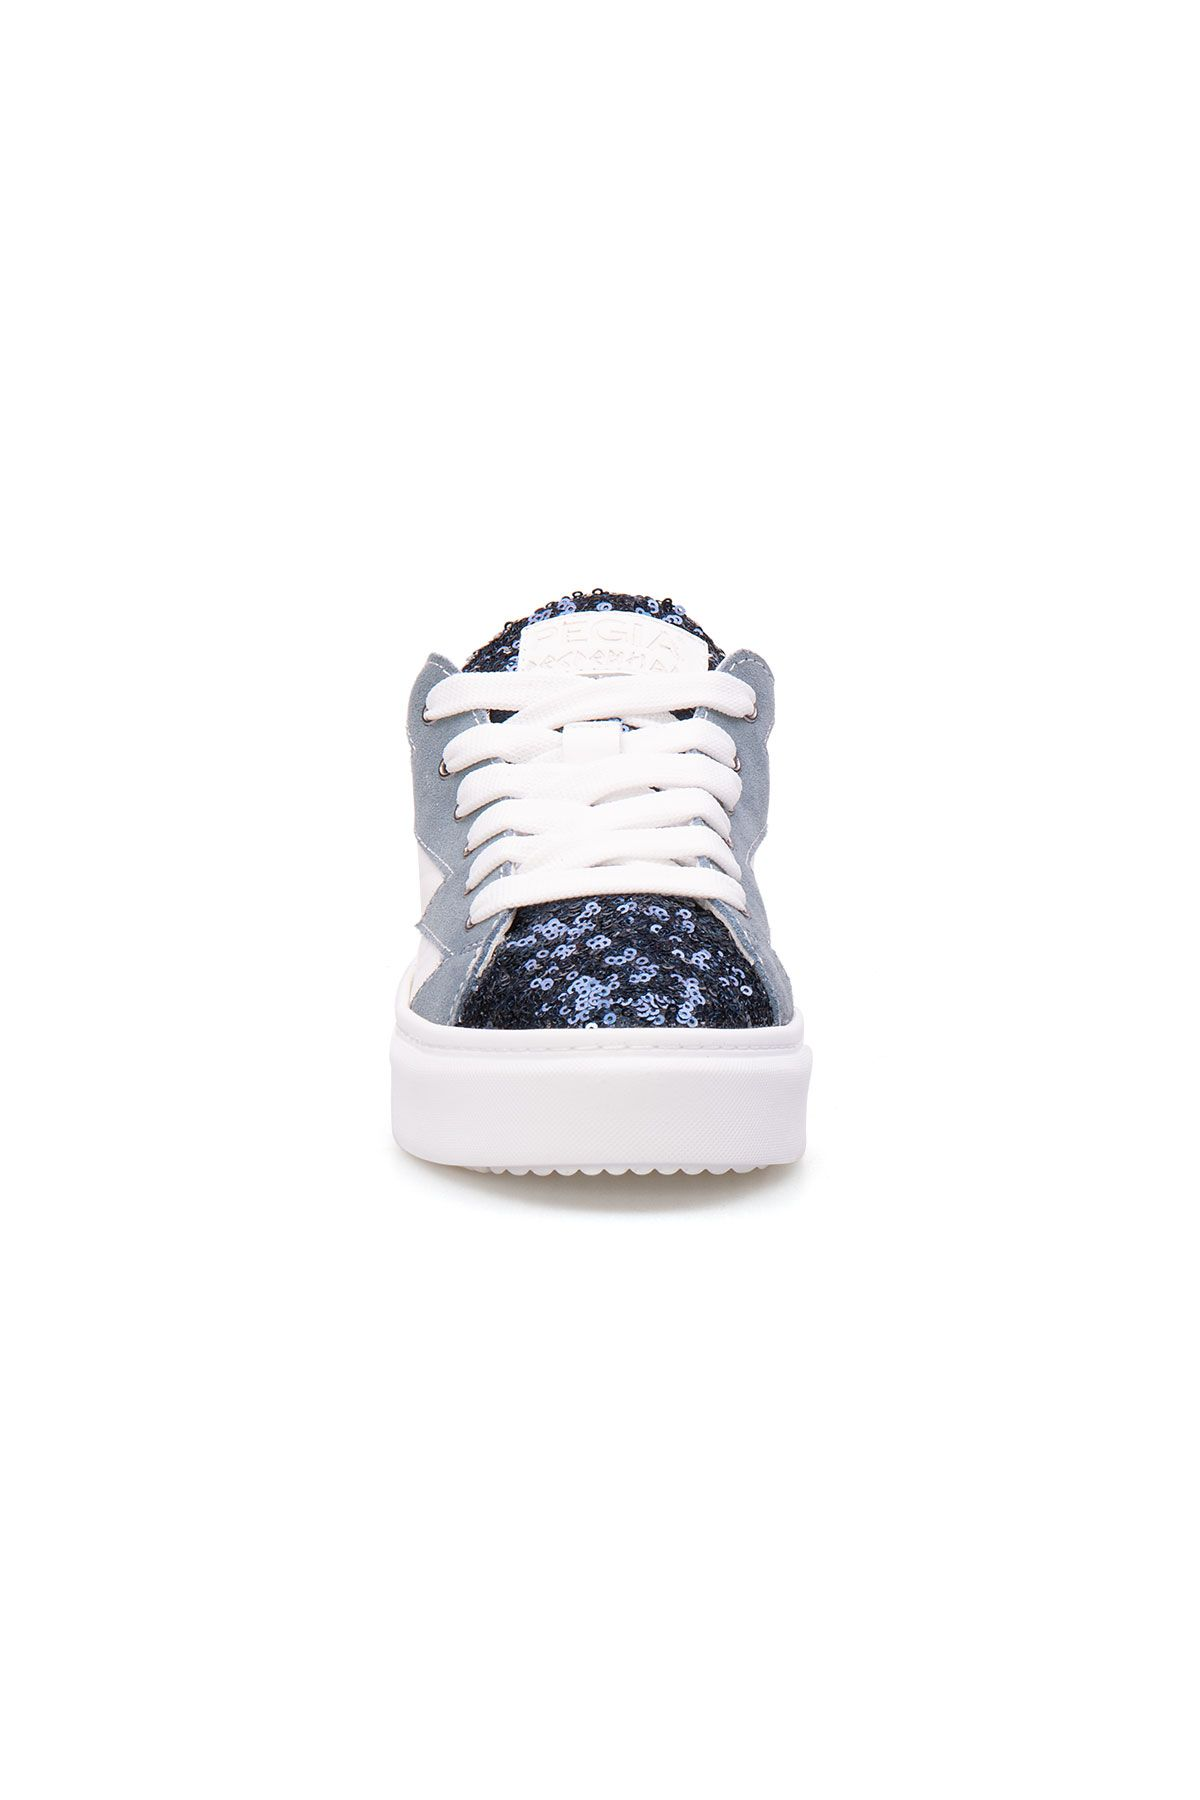 Pegia Genuine Leather Sequined Women's Sneaker LA1501 Turquoise